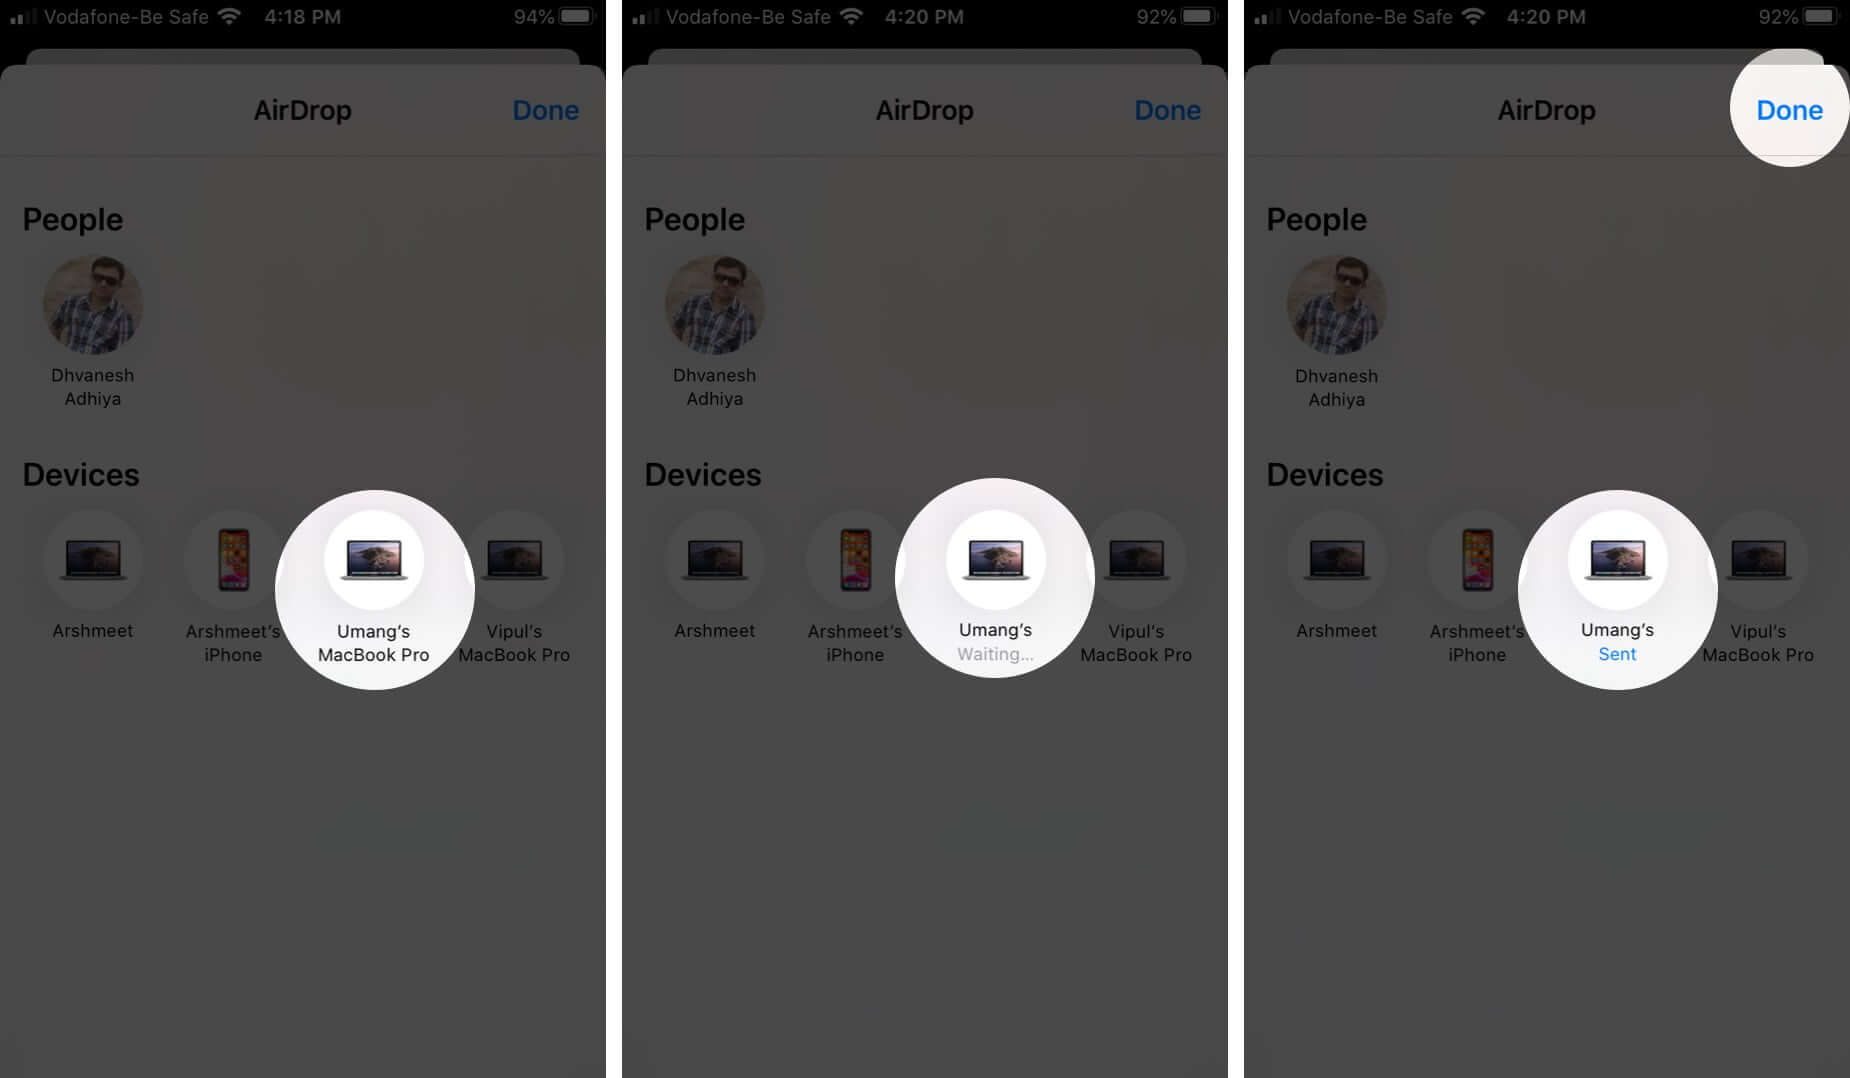 Select Device and Tap on Done to Share Files Using AirDrop on iPhone